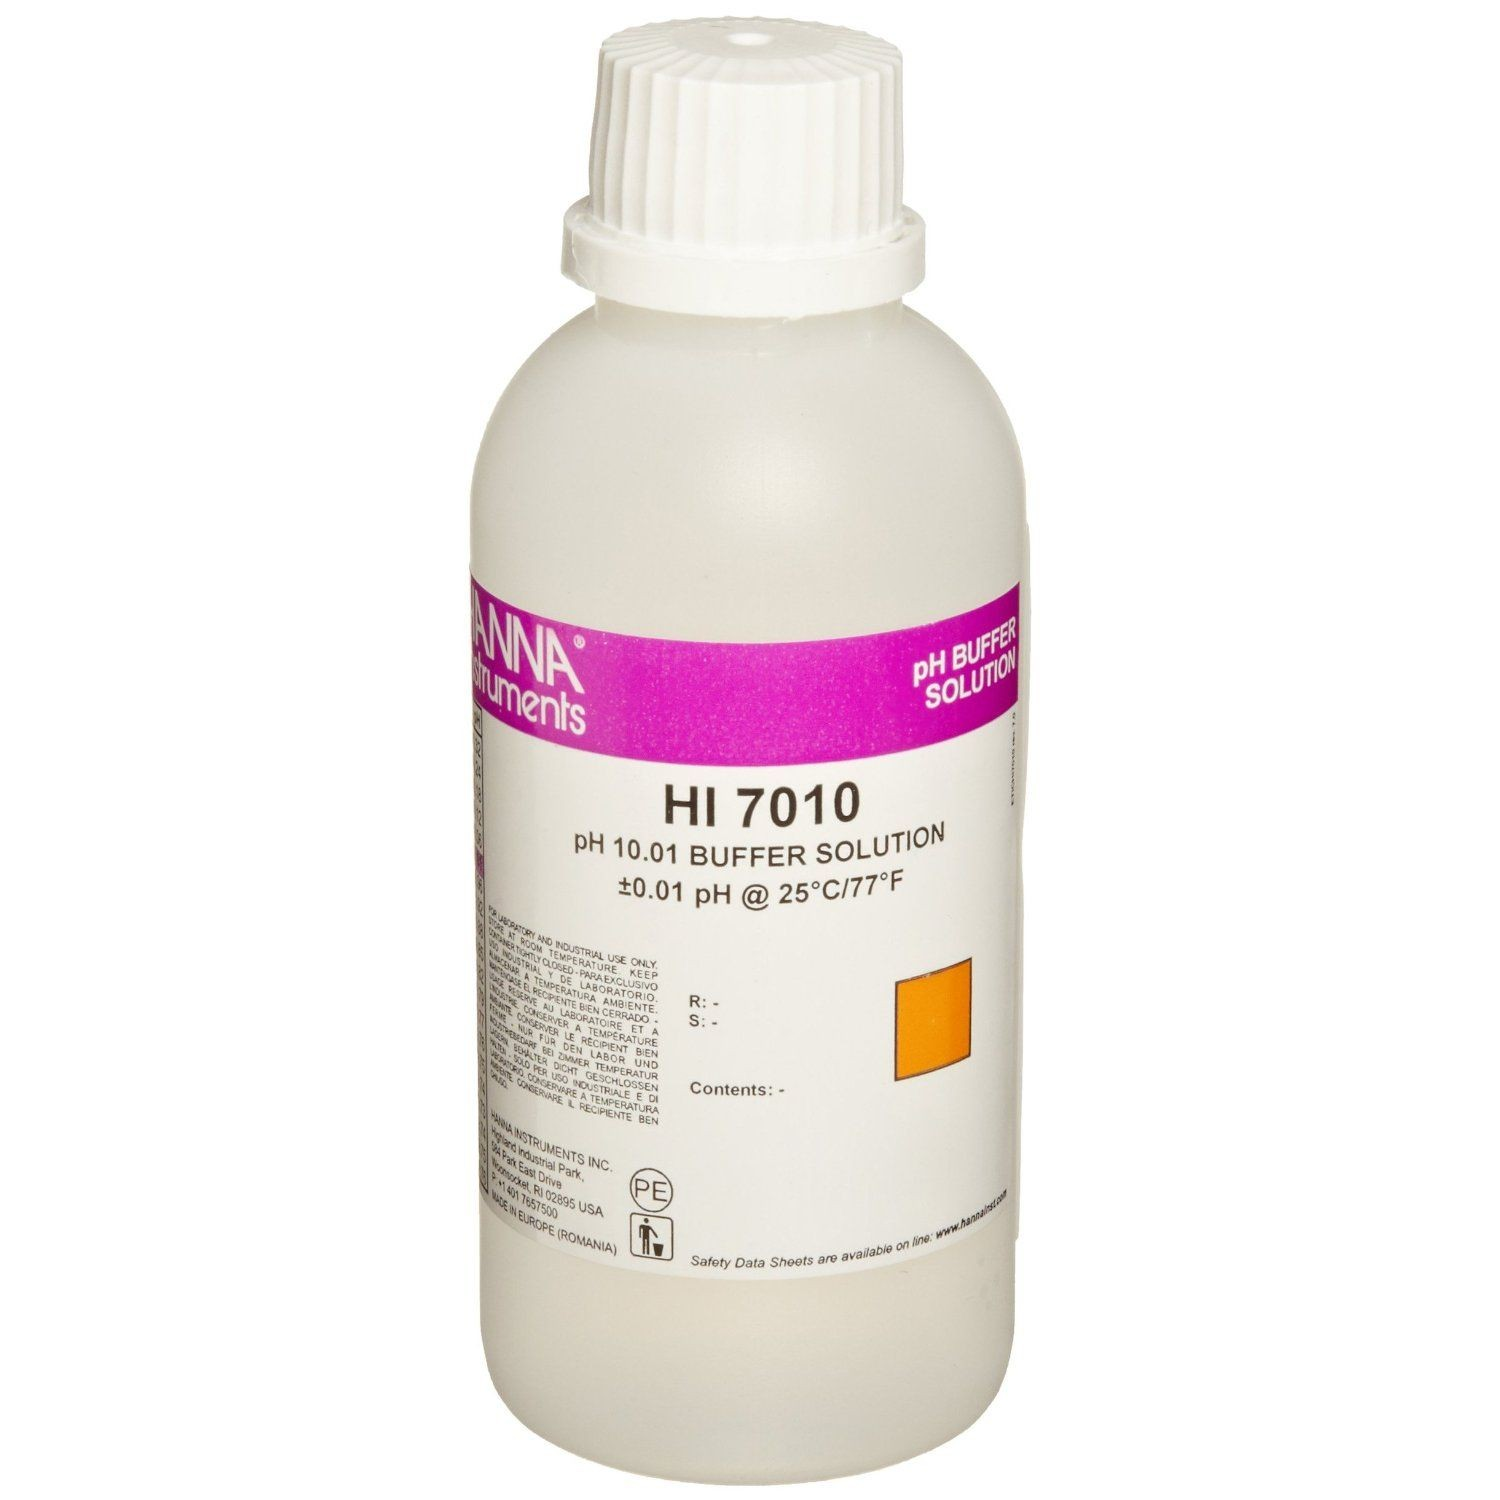 Liquido calibrador ph 10.01 (Bote 230 ml.)